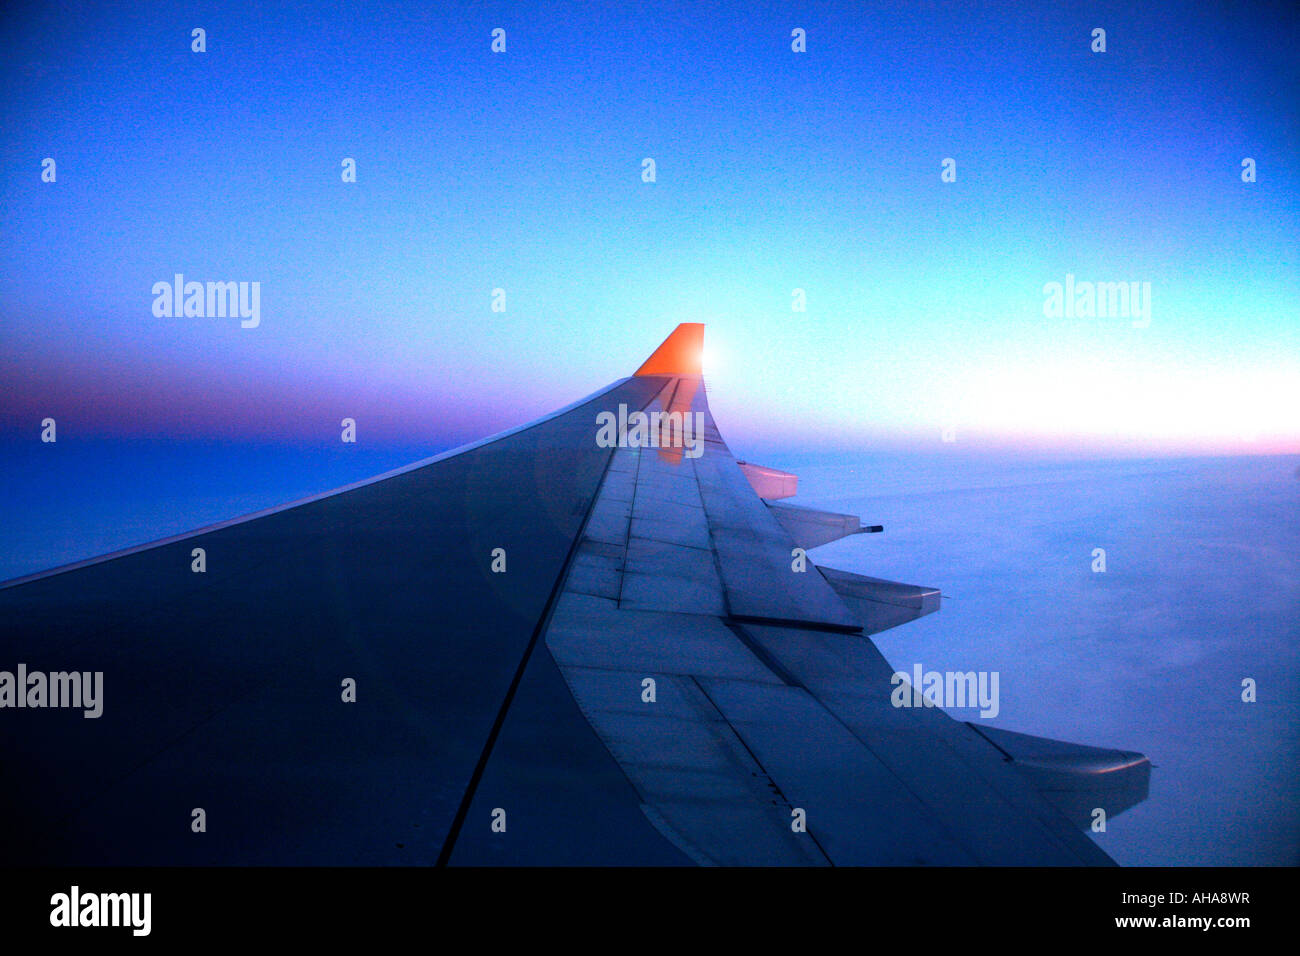 view out of an Aeroplane window - Stock Image